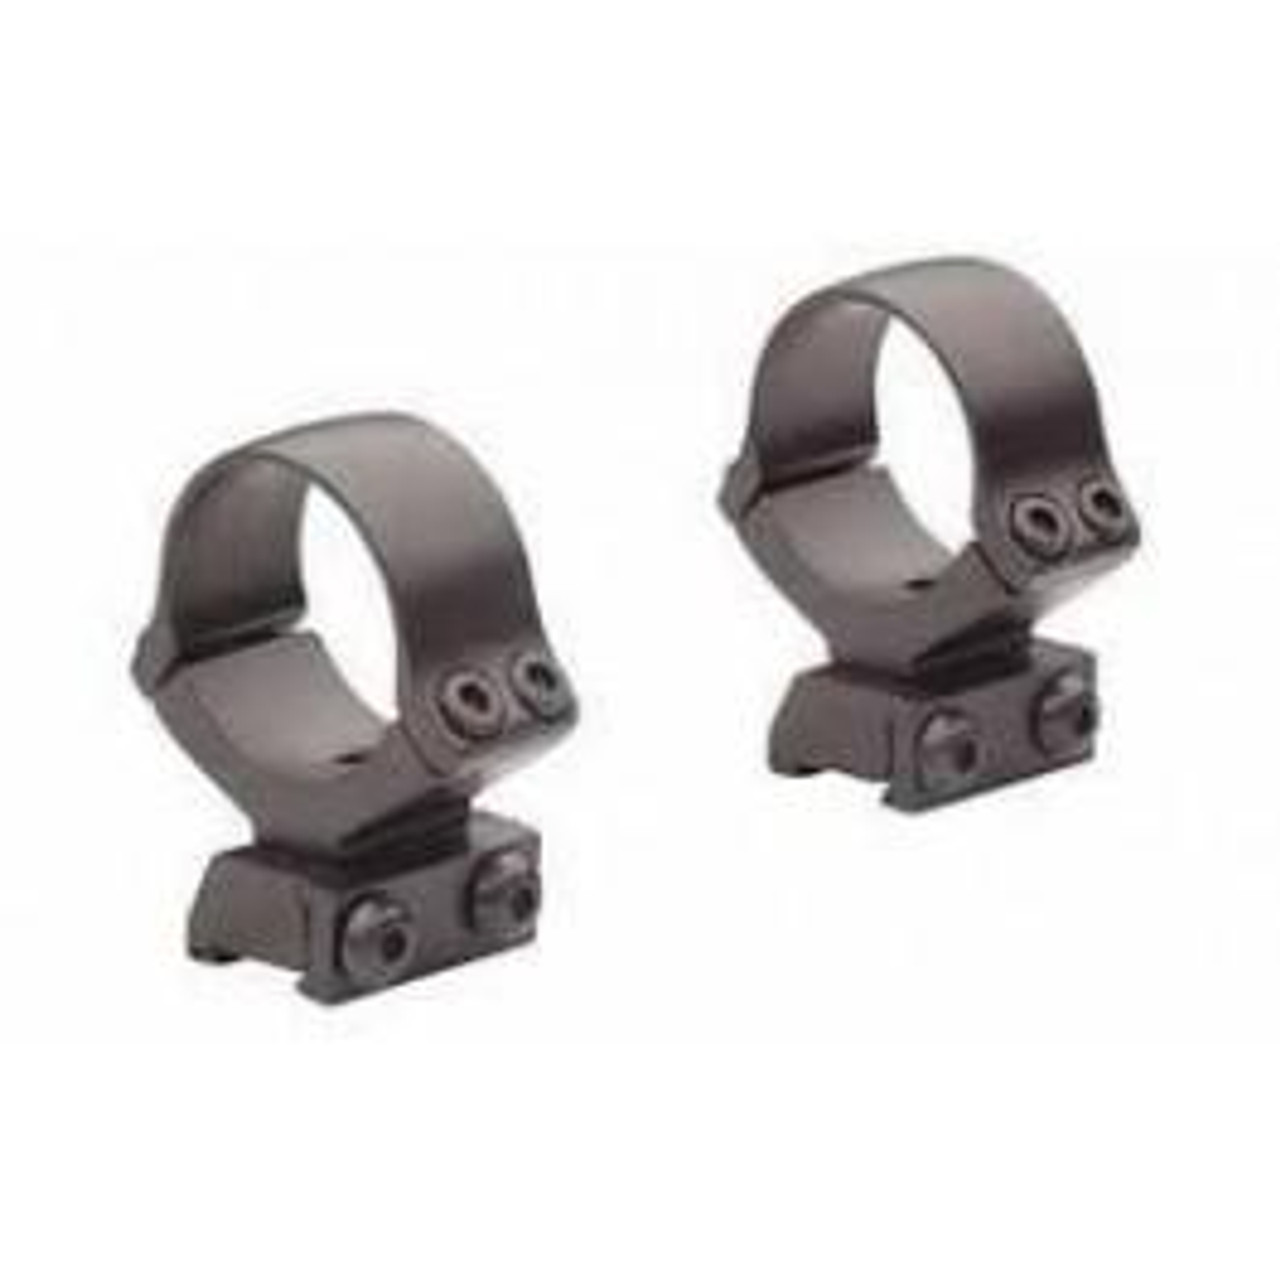 CZ Scope Ring Mount for CZ 452/453/455/512, Steel, 30mm Scope Mounts, Integrated Base & Rings